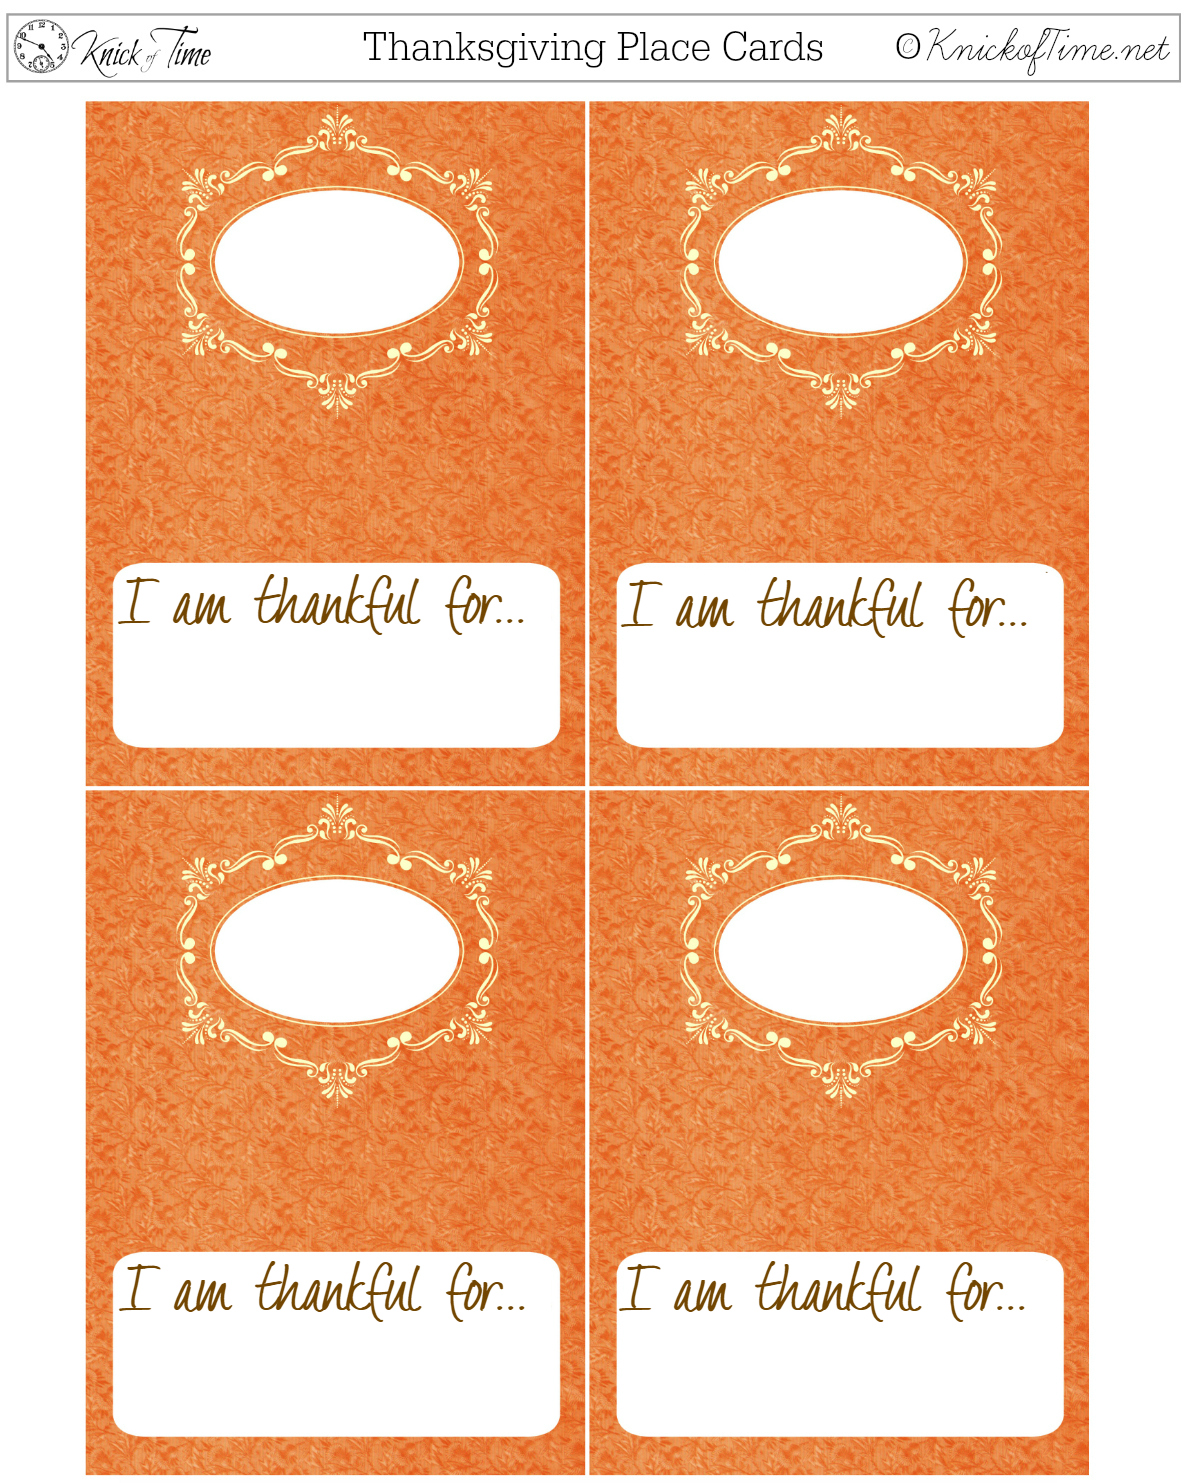 Thanksgiving printable place cards knick of time thanksgiving printable place cards pronofoot35fo Choice Image